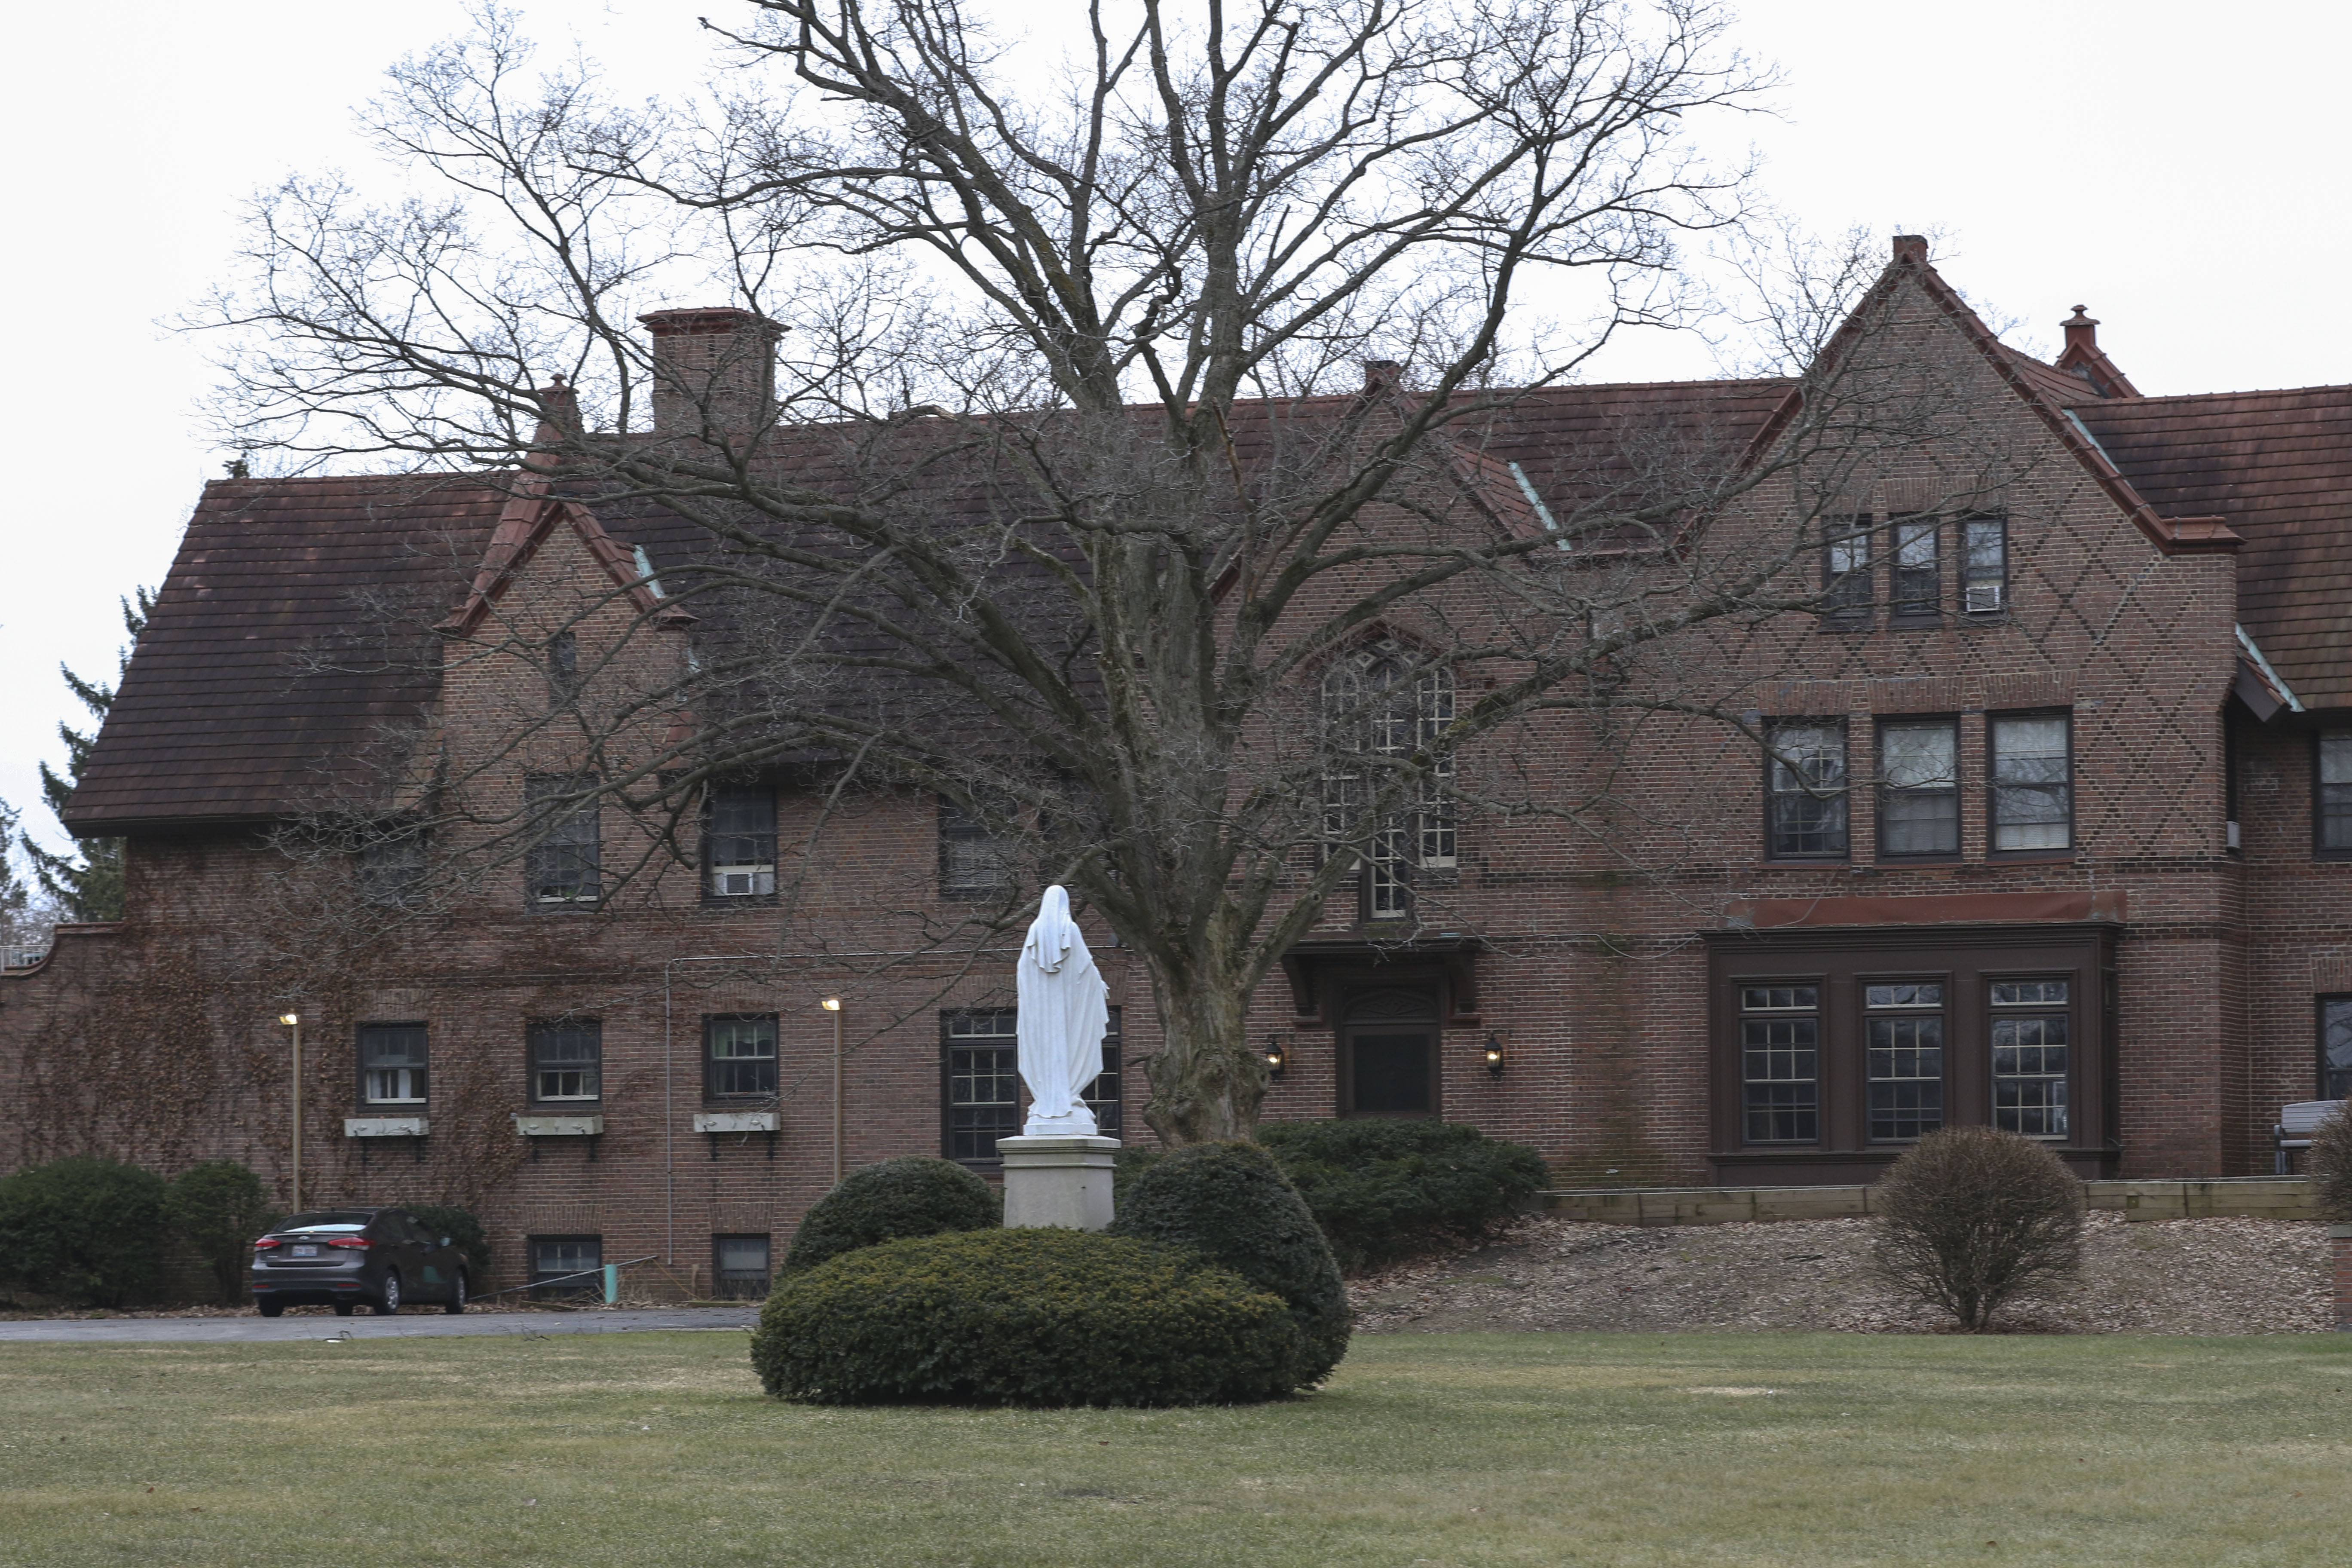 Could Wheaton Park District help save Loretto Convent building?